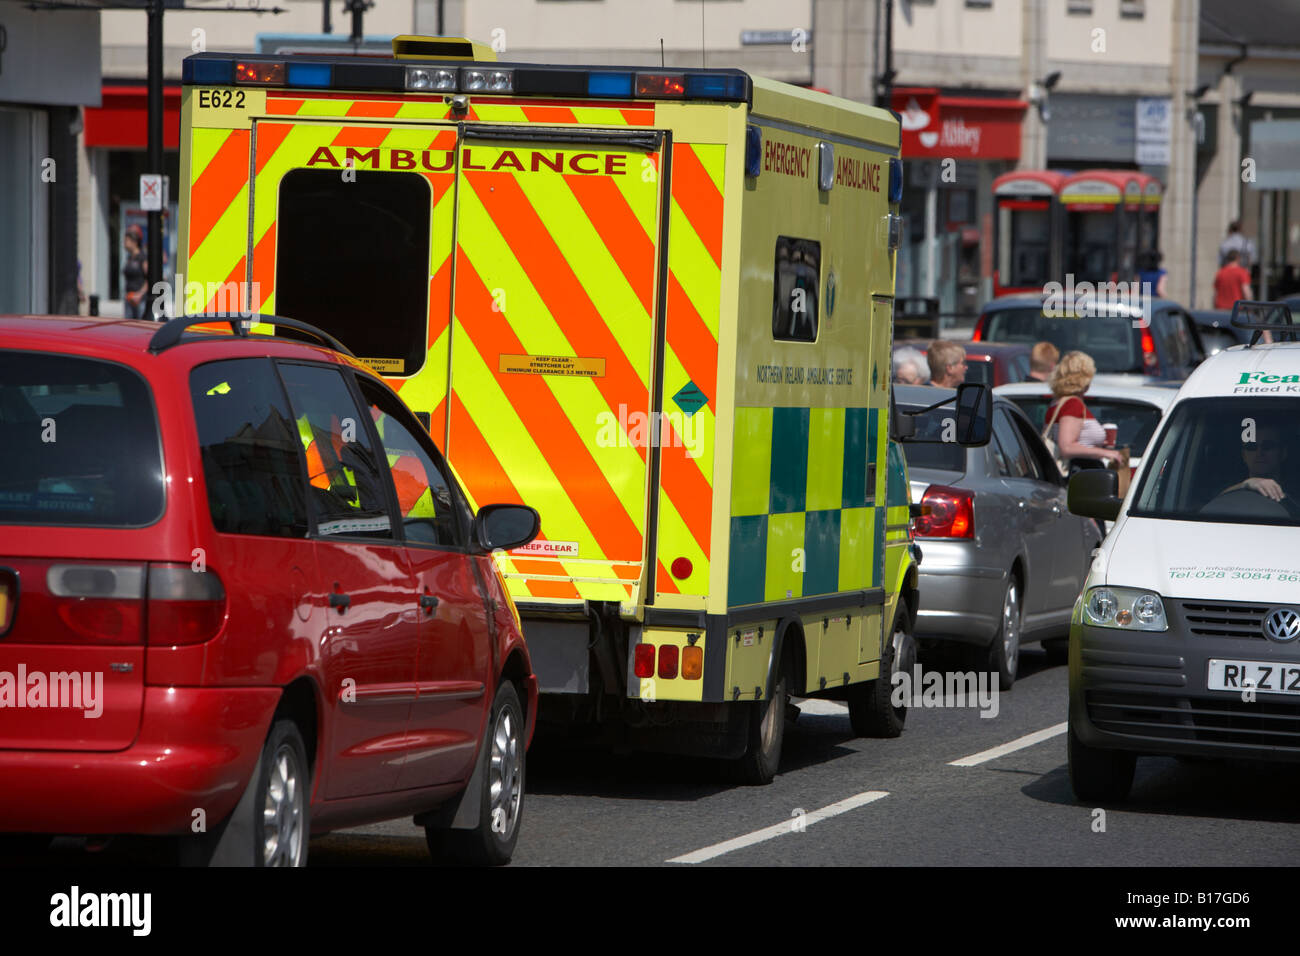 northern ireland ambulance service emergency ambulance sitting in middle of traffic downpatrick county down northern - Stock Image